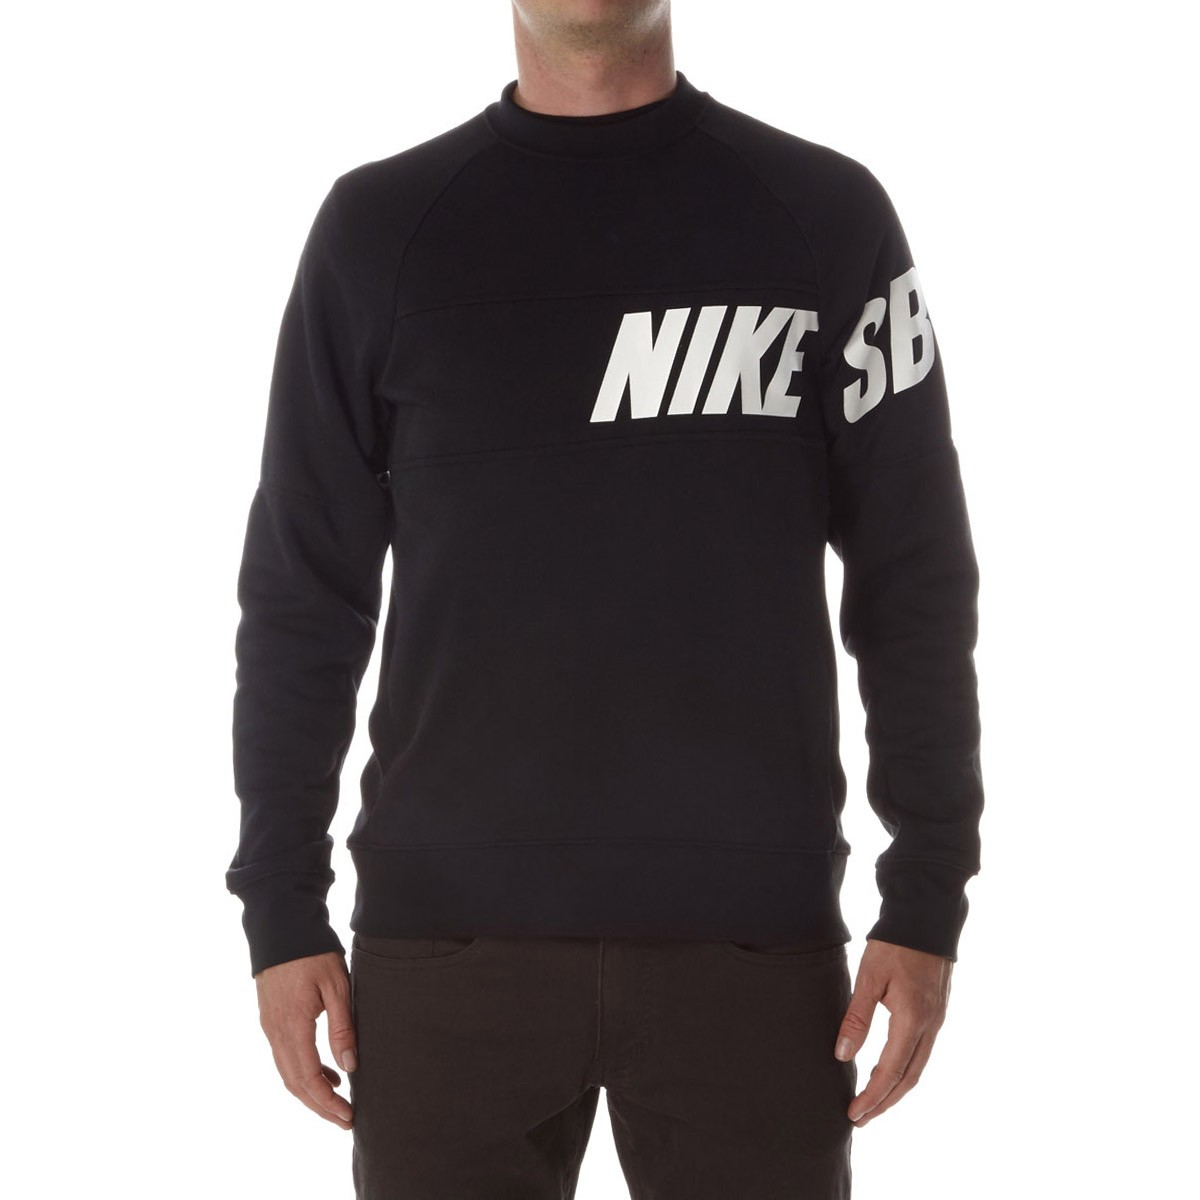 Nike Sb Lightweight Everett Dri Fit Crew Sweatshirt Black White